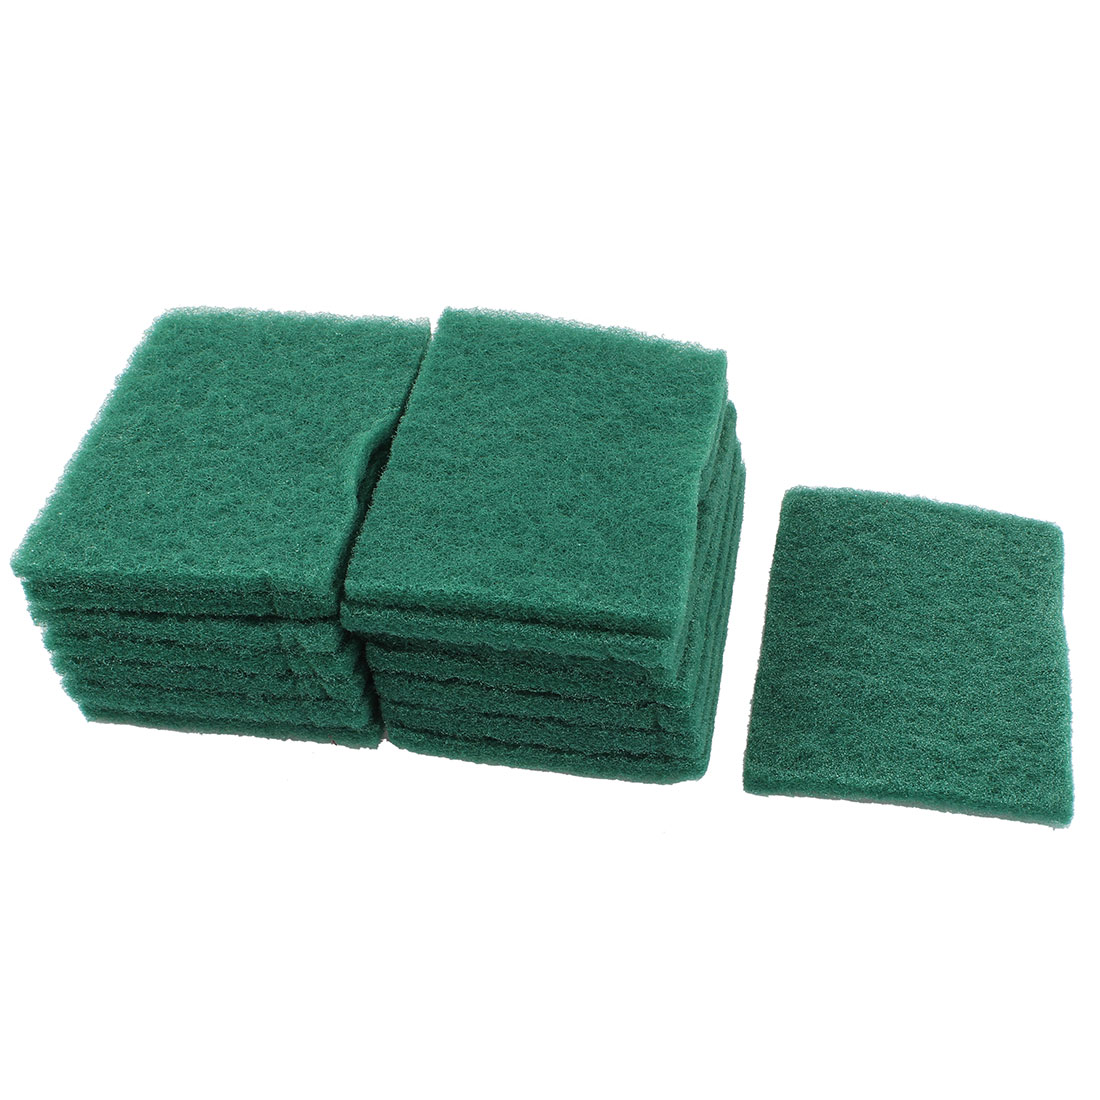 Home Kitchen Bowl Dish Wash Clean Scrub Sponge Cleaning Pads Green 15pcs